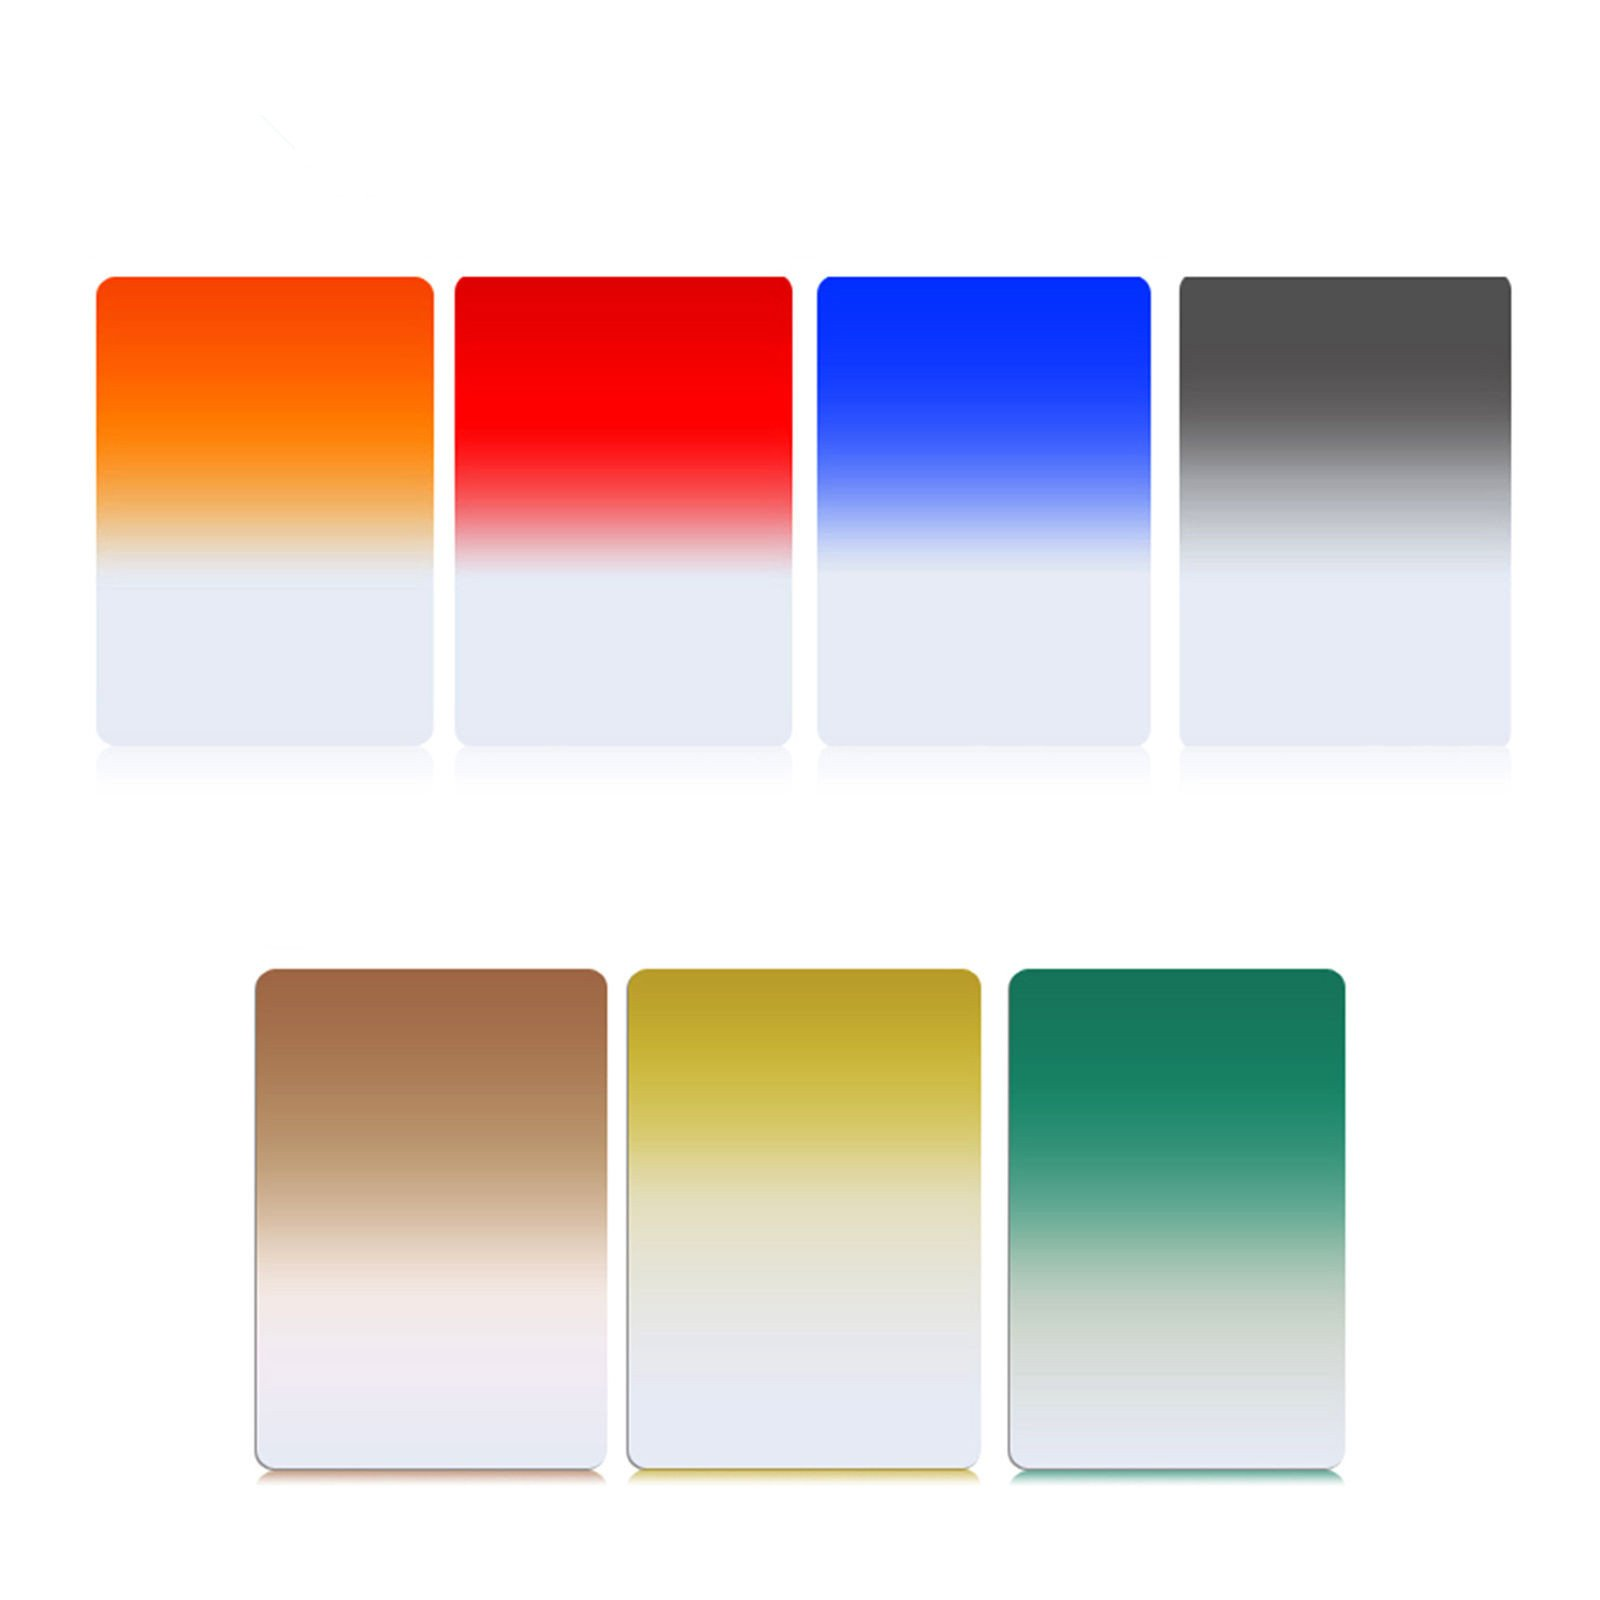 ZOMEI 150mm x 100mm Graduated Square Filters 7 Colors Filter Kit for Cokin Z Series